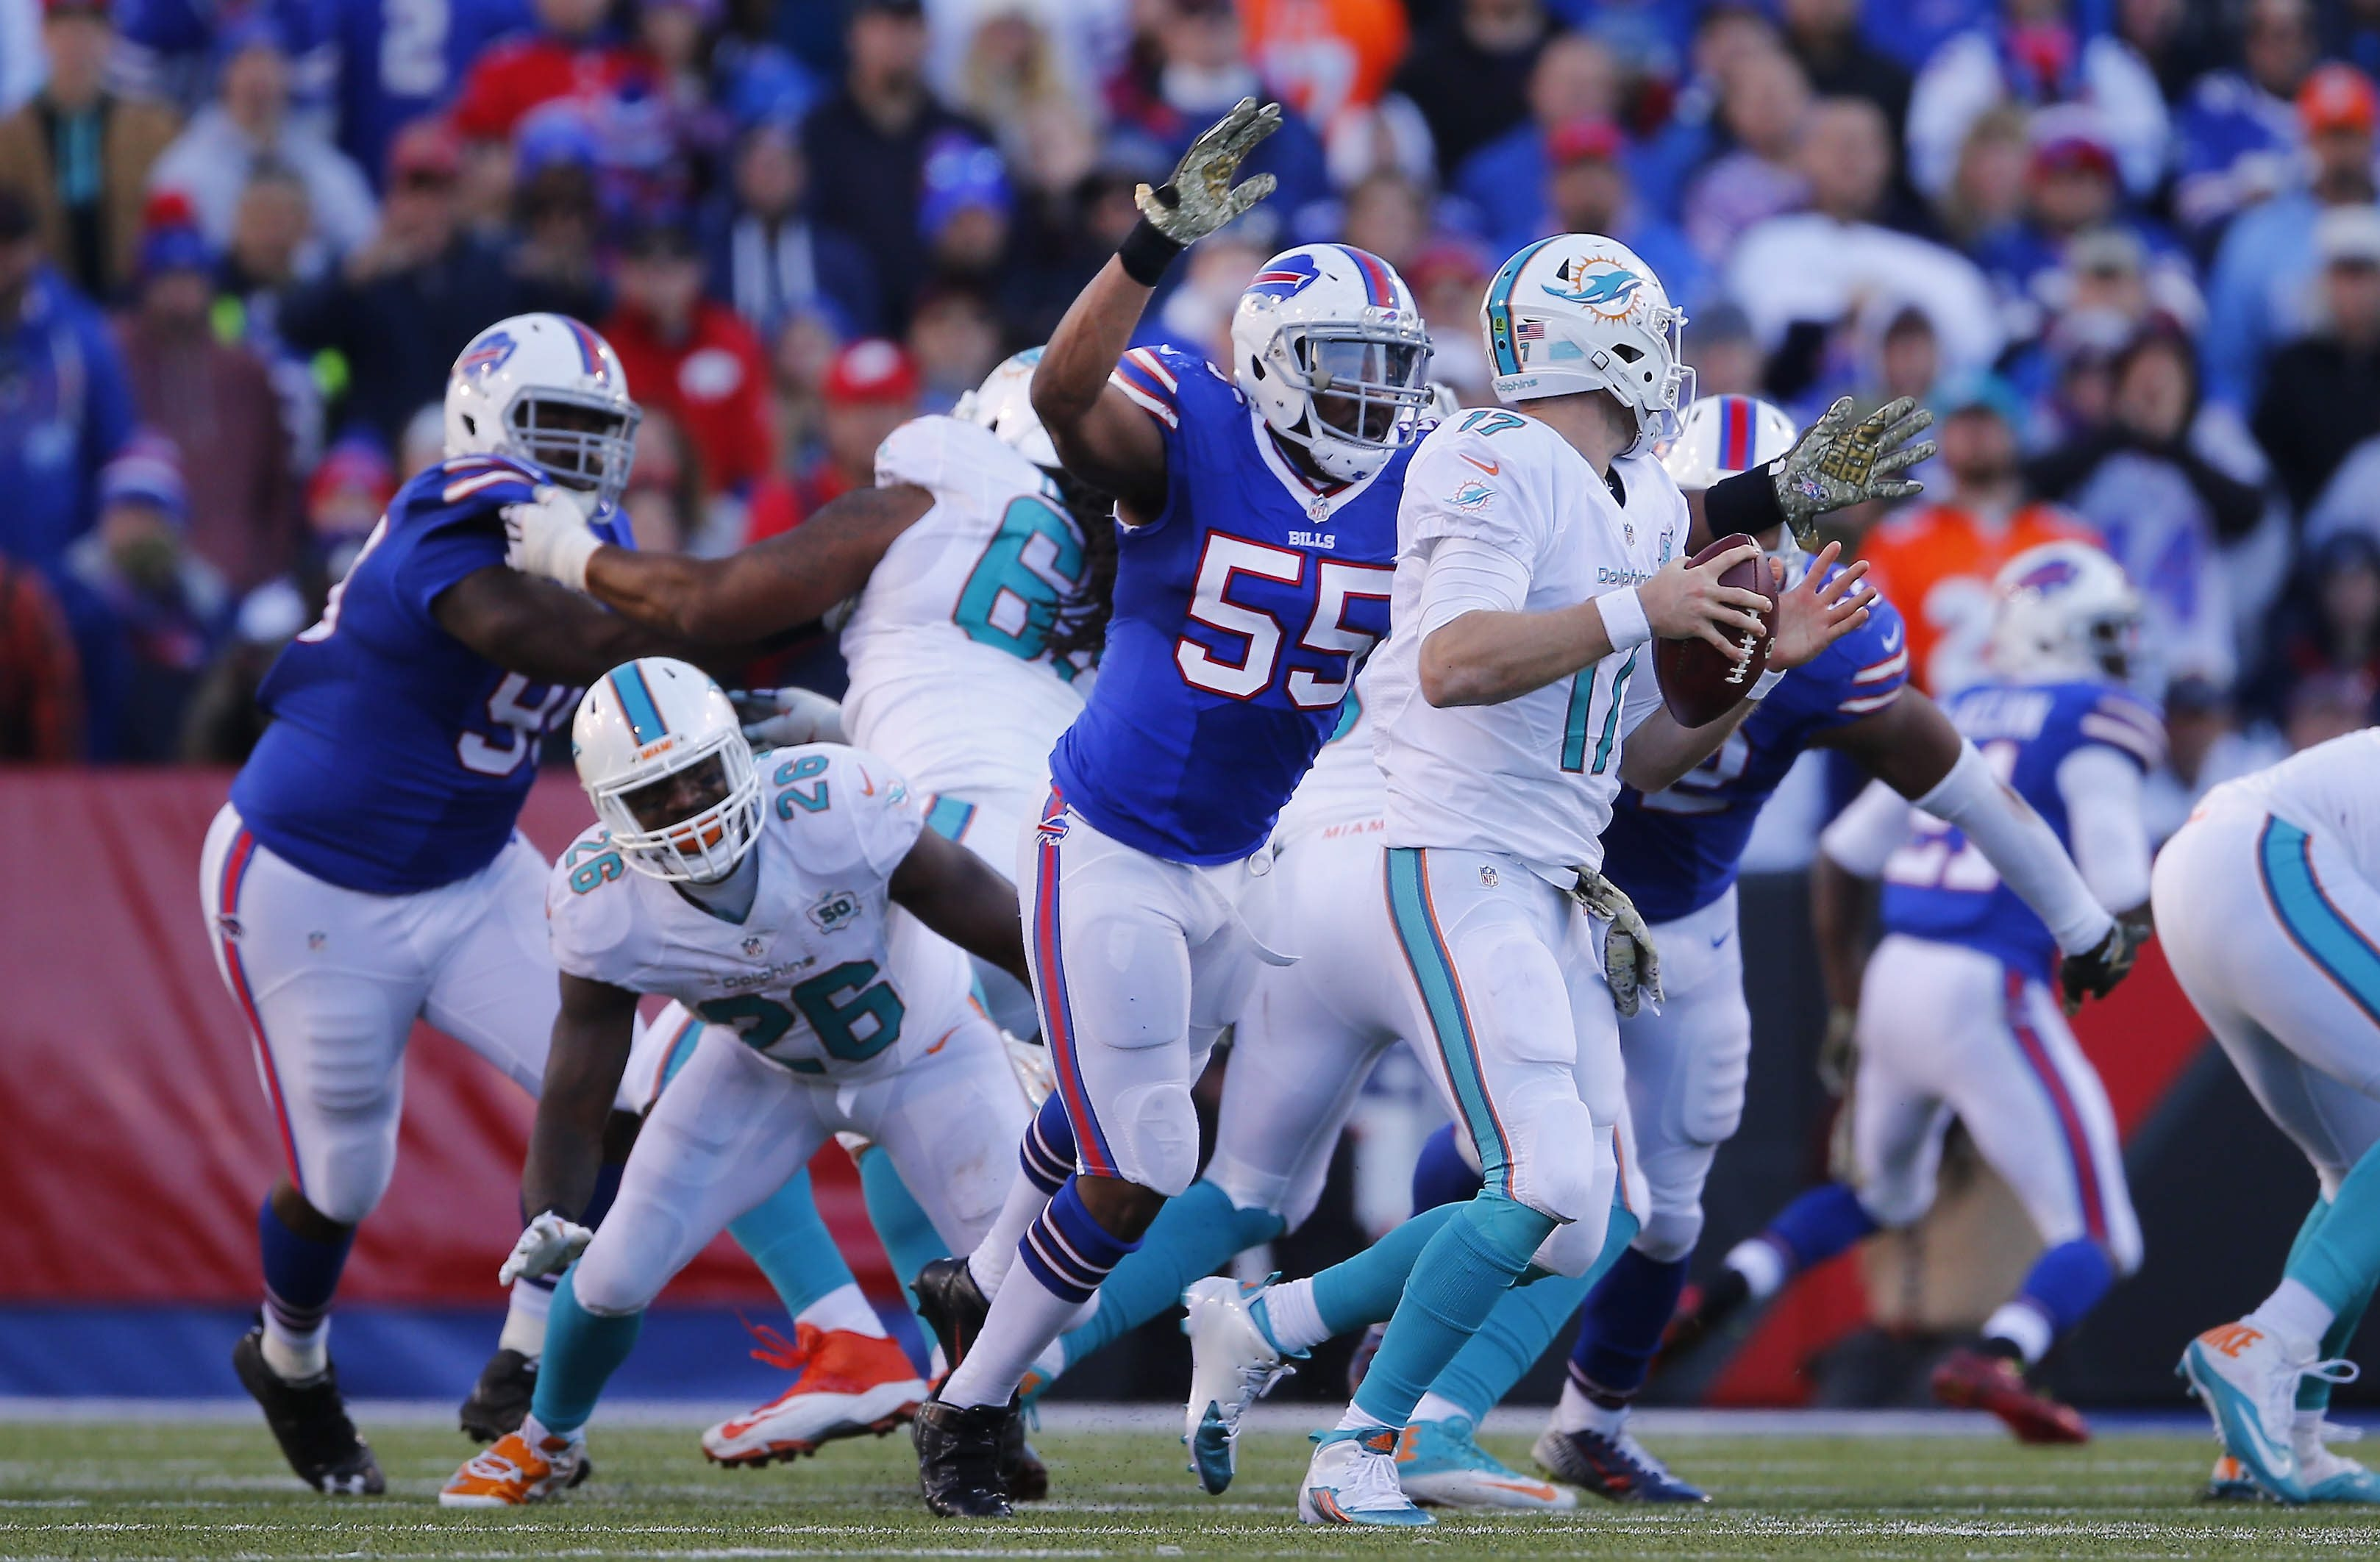 Back in his natural defensive end position, Jerry Hughes believes he can top his career-high sack total of 10. (Buffalo News file photo)